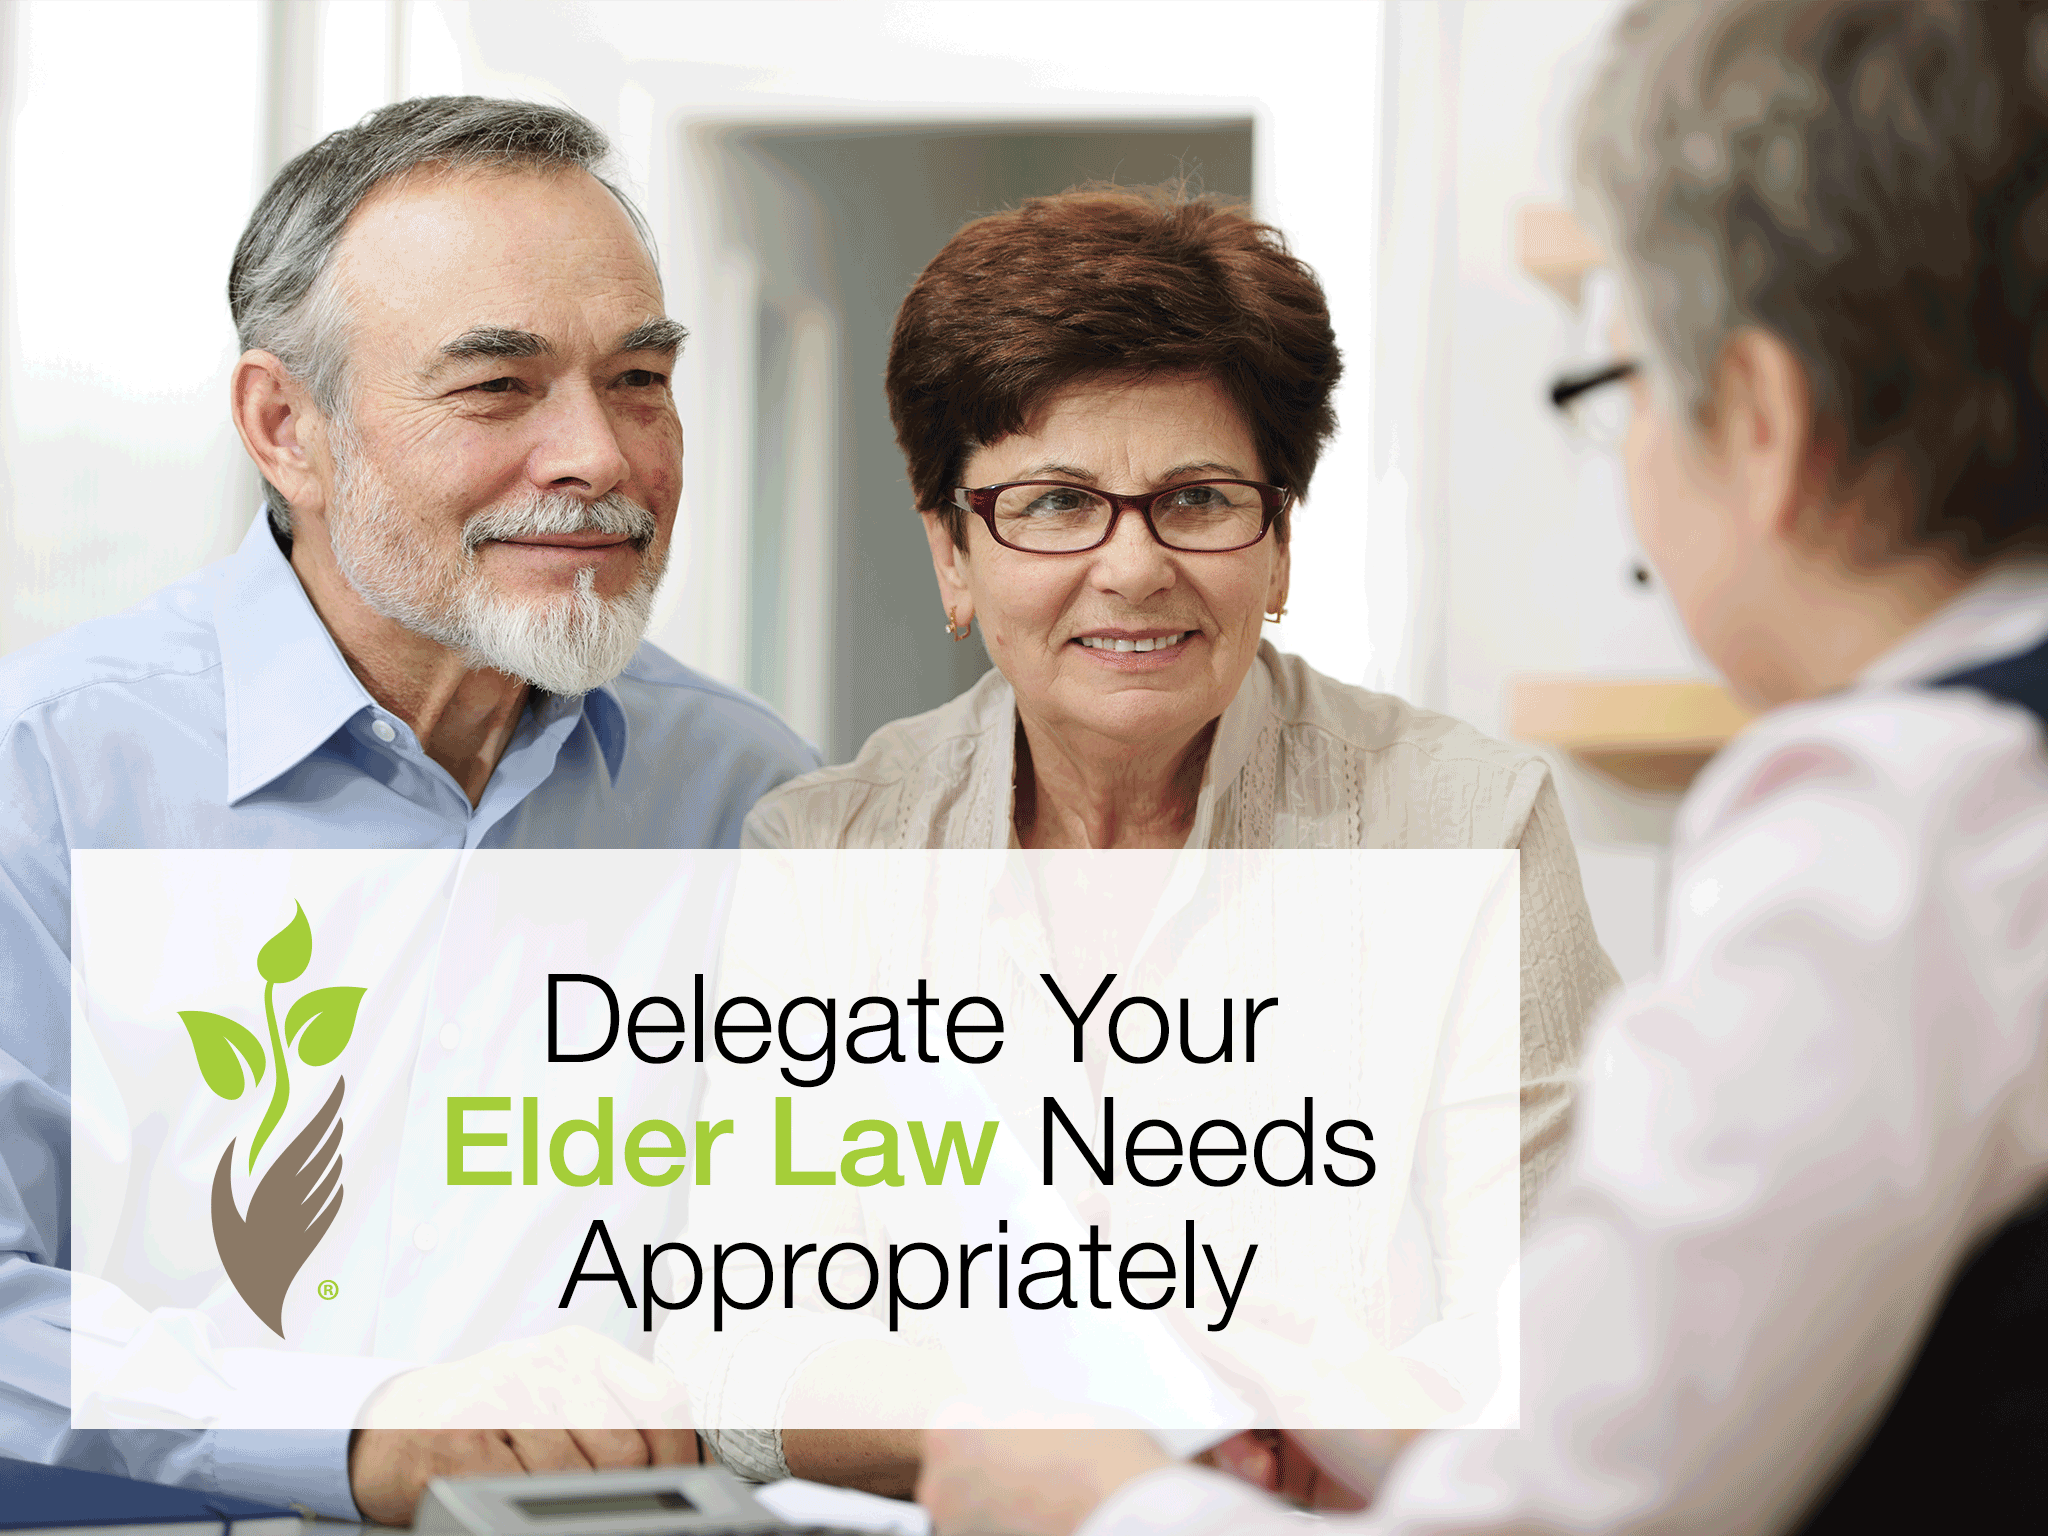 Delegate Your Elder Law Needs Appropriately